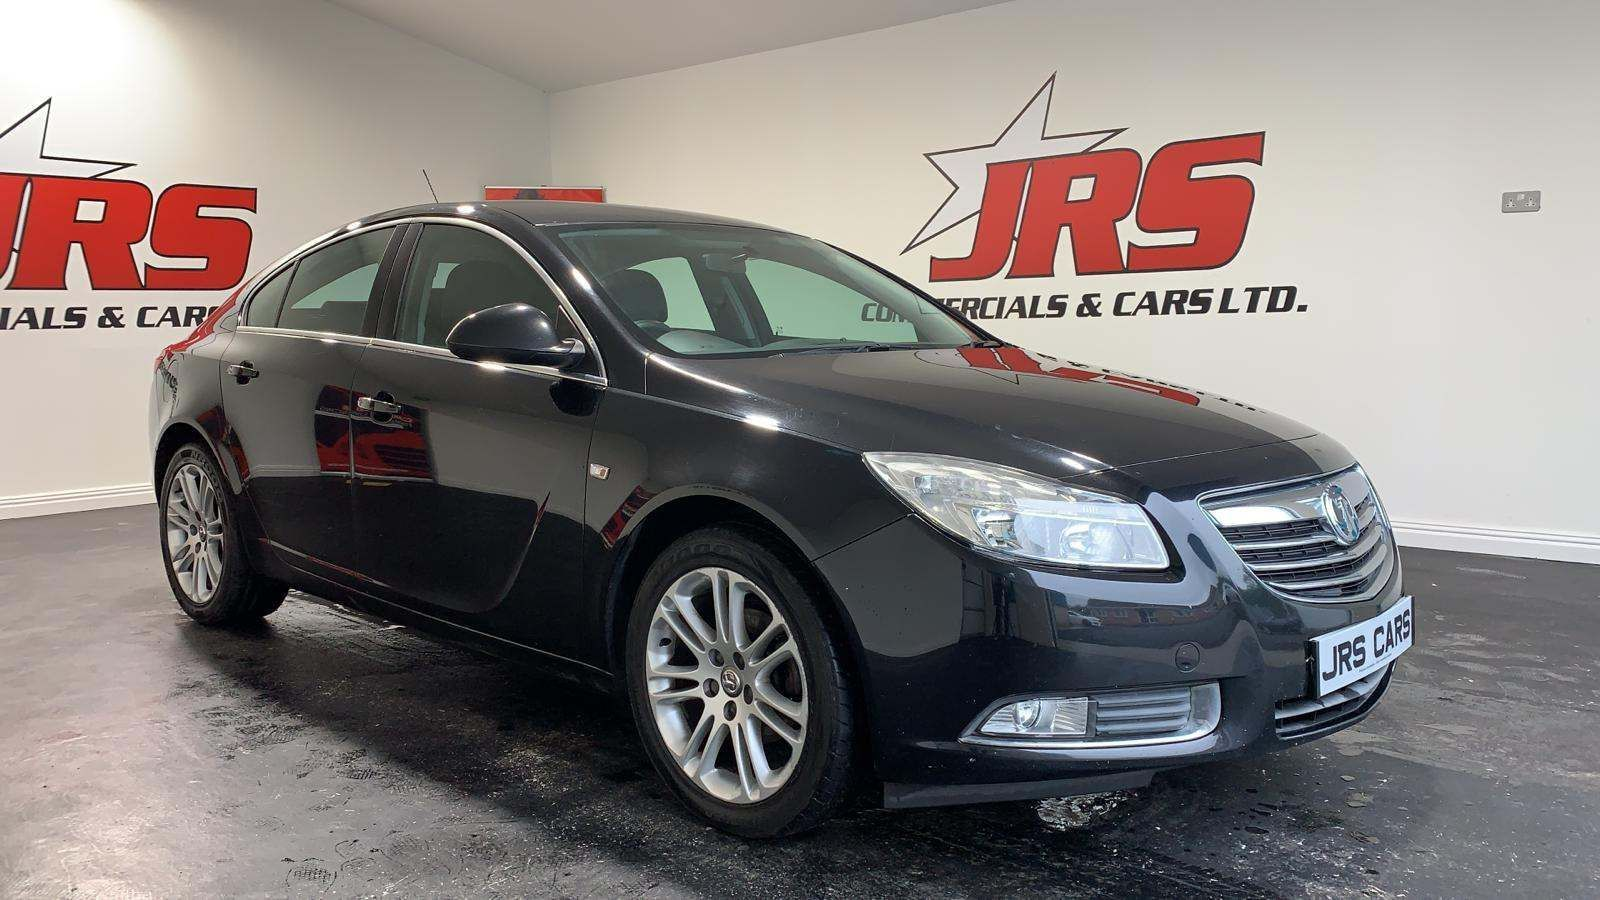 2011 VAUXHALL Insignia 2.0 CDTi 16v Exclusiv Diesel Manual *Heated Seats* – J R S Commercials And Cars Dungannon full